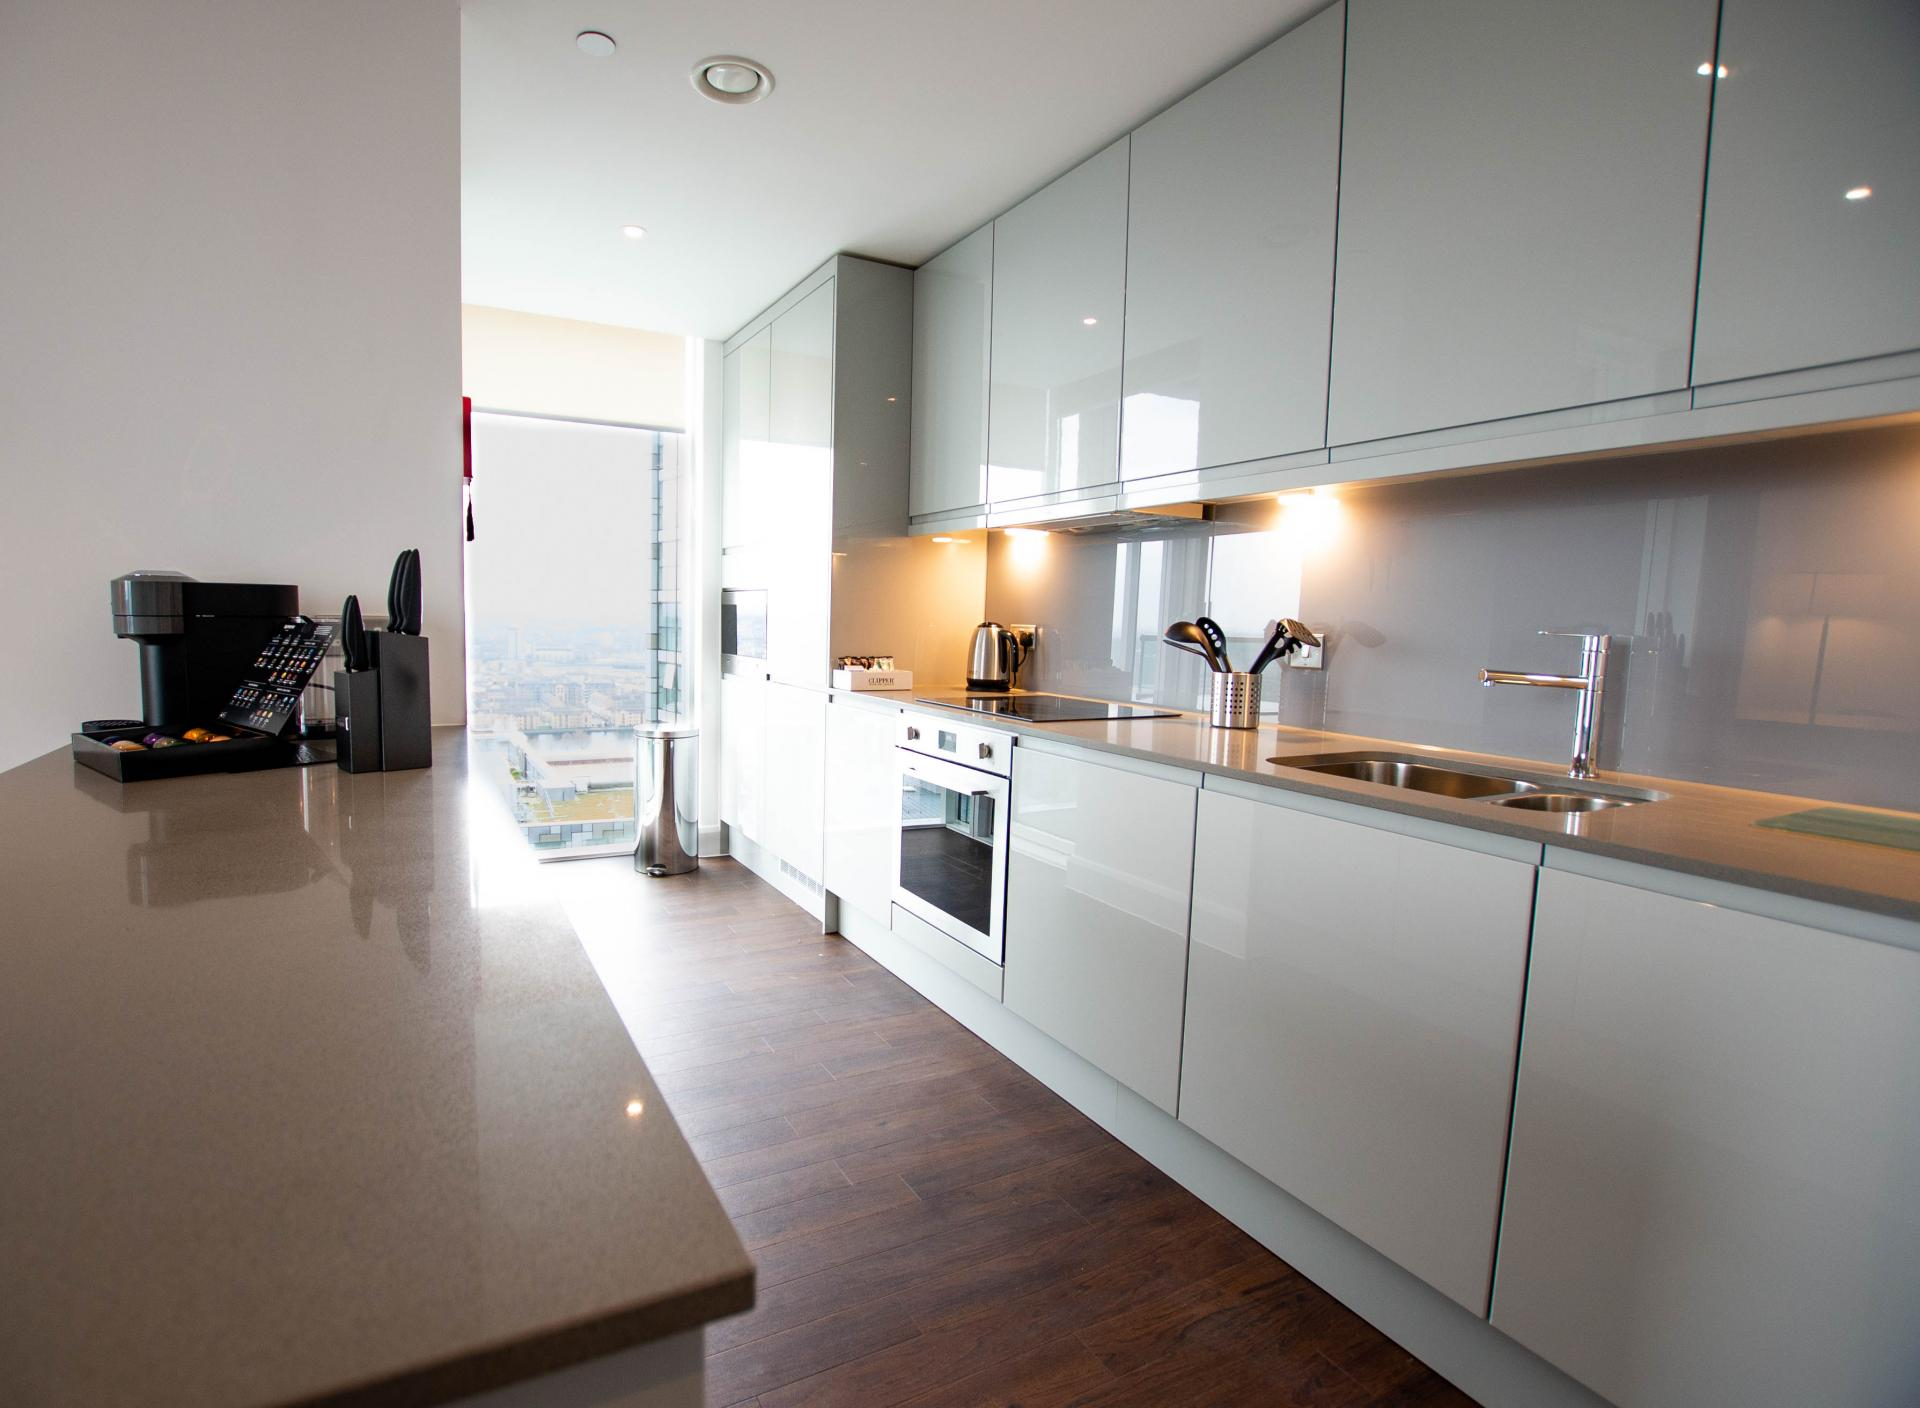 Kitchen space at Canary Wharf Apartments By Charles Hope, Canary Wharf, London - Citybase Apartments